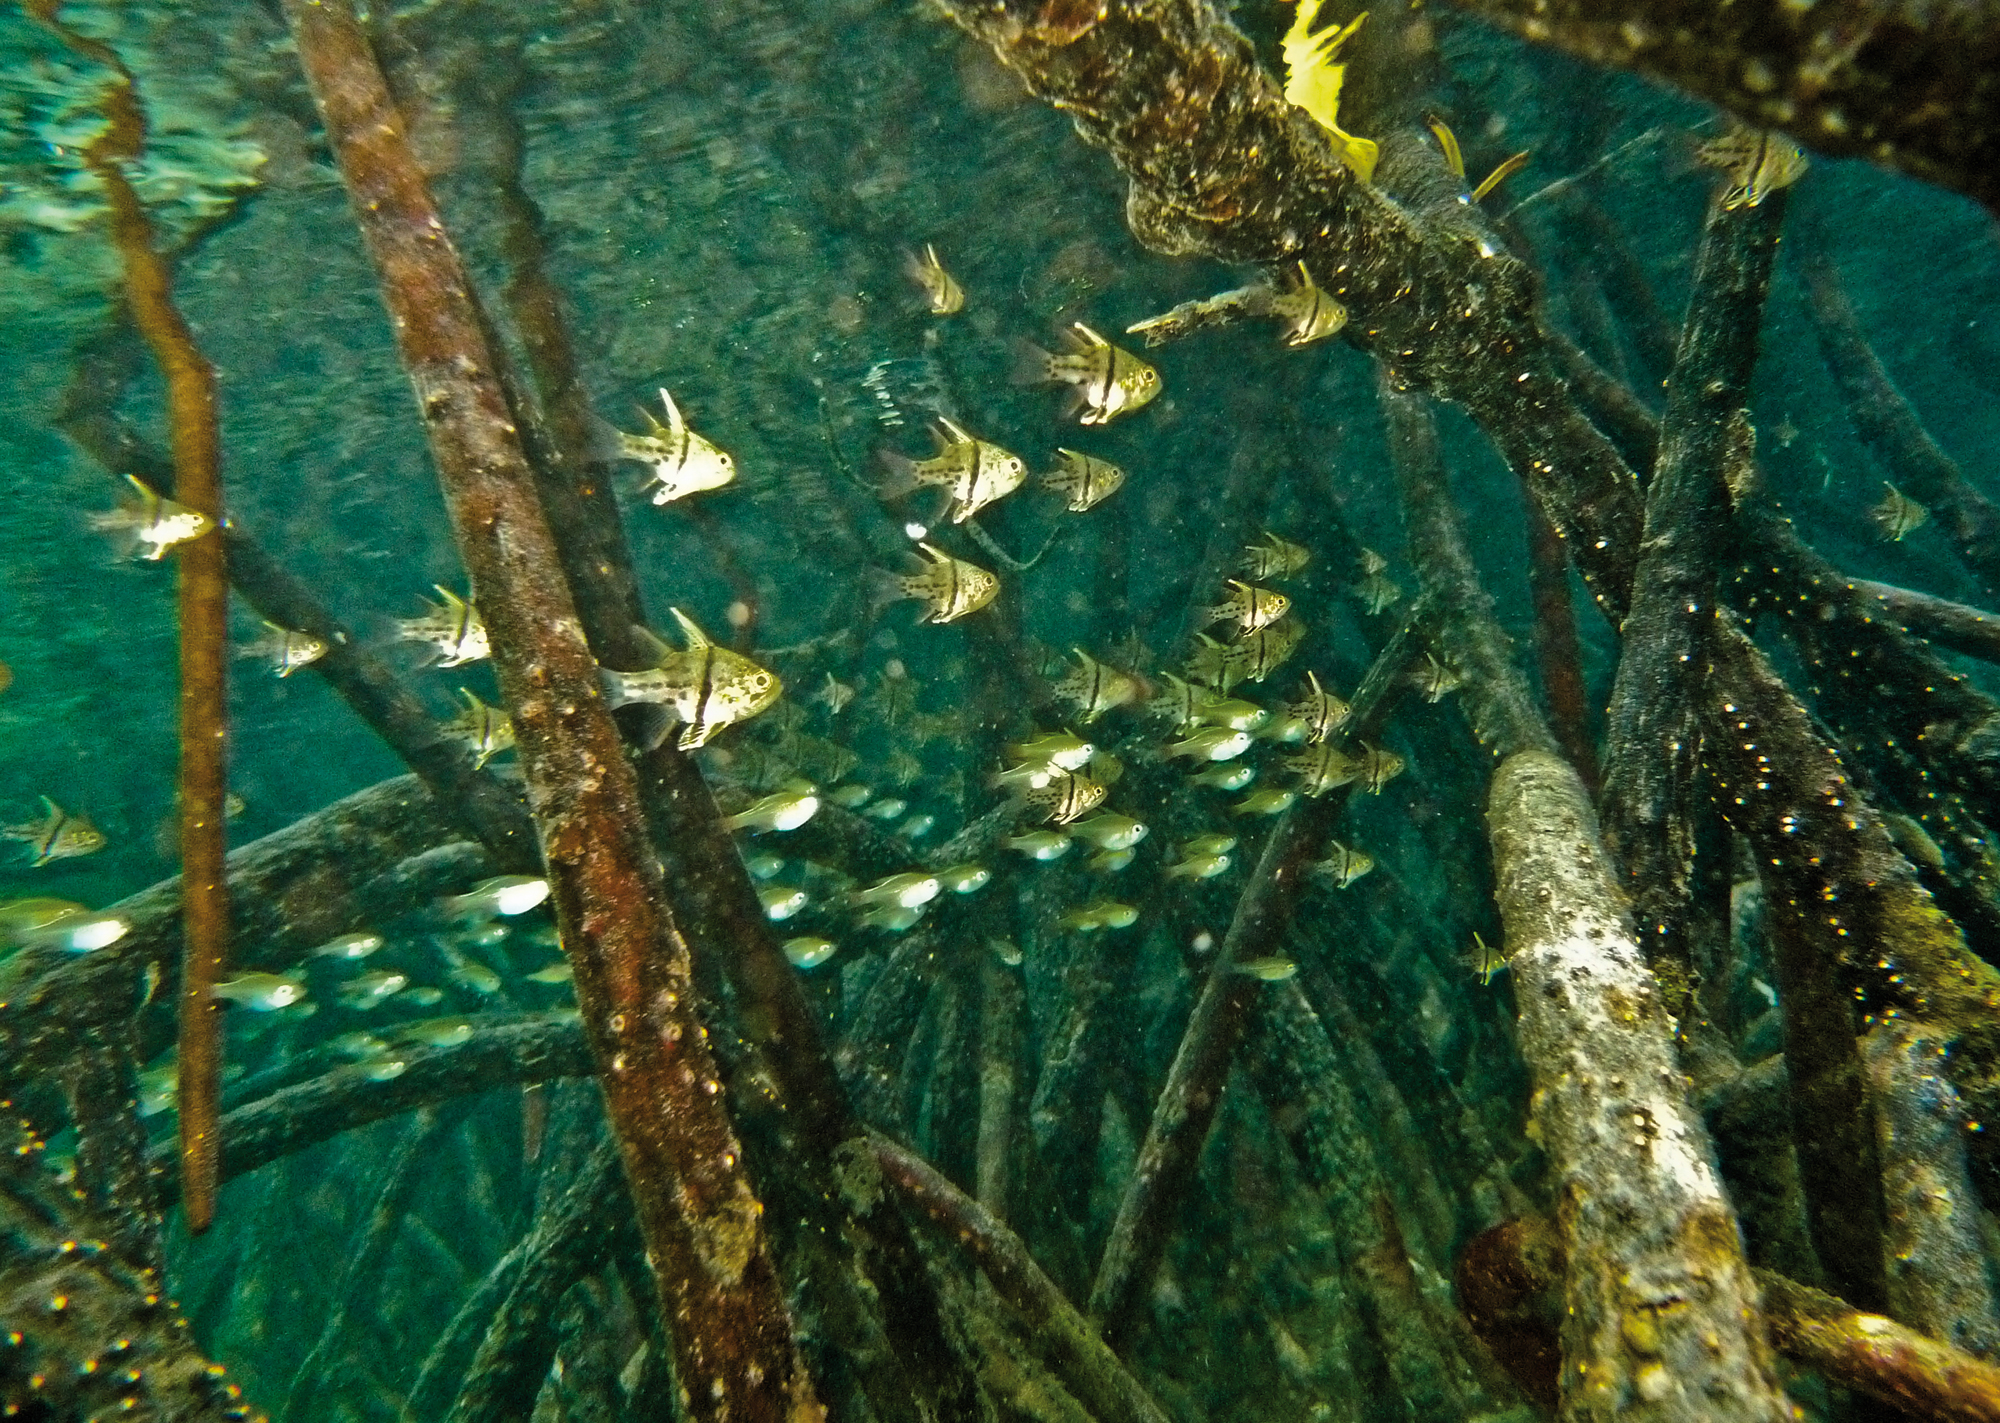 FOREST OF THE CARDINALFISHES (Sphaeramia orbicularis)